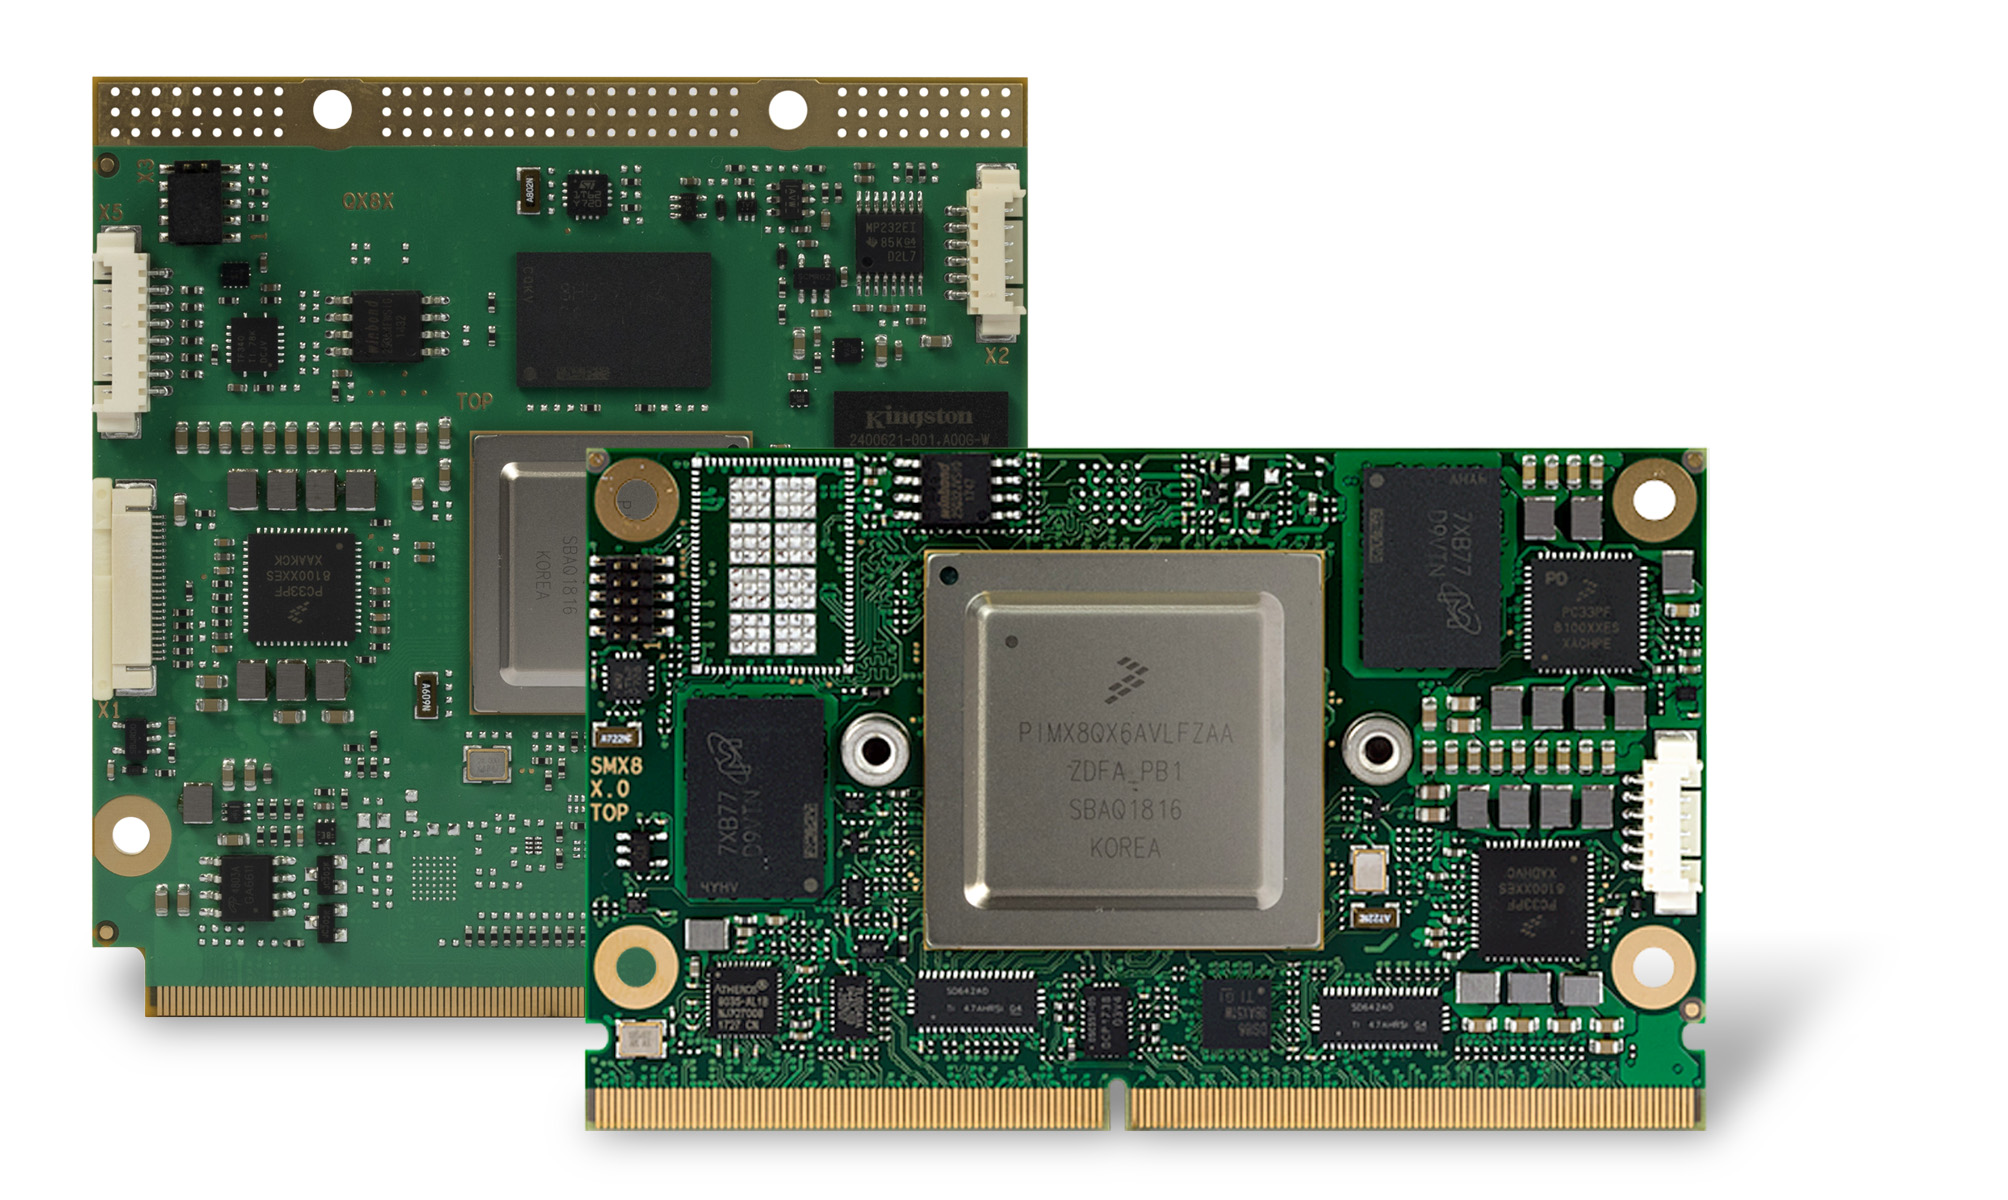 congatec launches i MX 8X on SMARC 2 0 and Qseven modules: The new